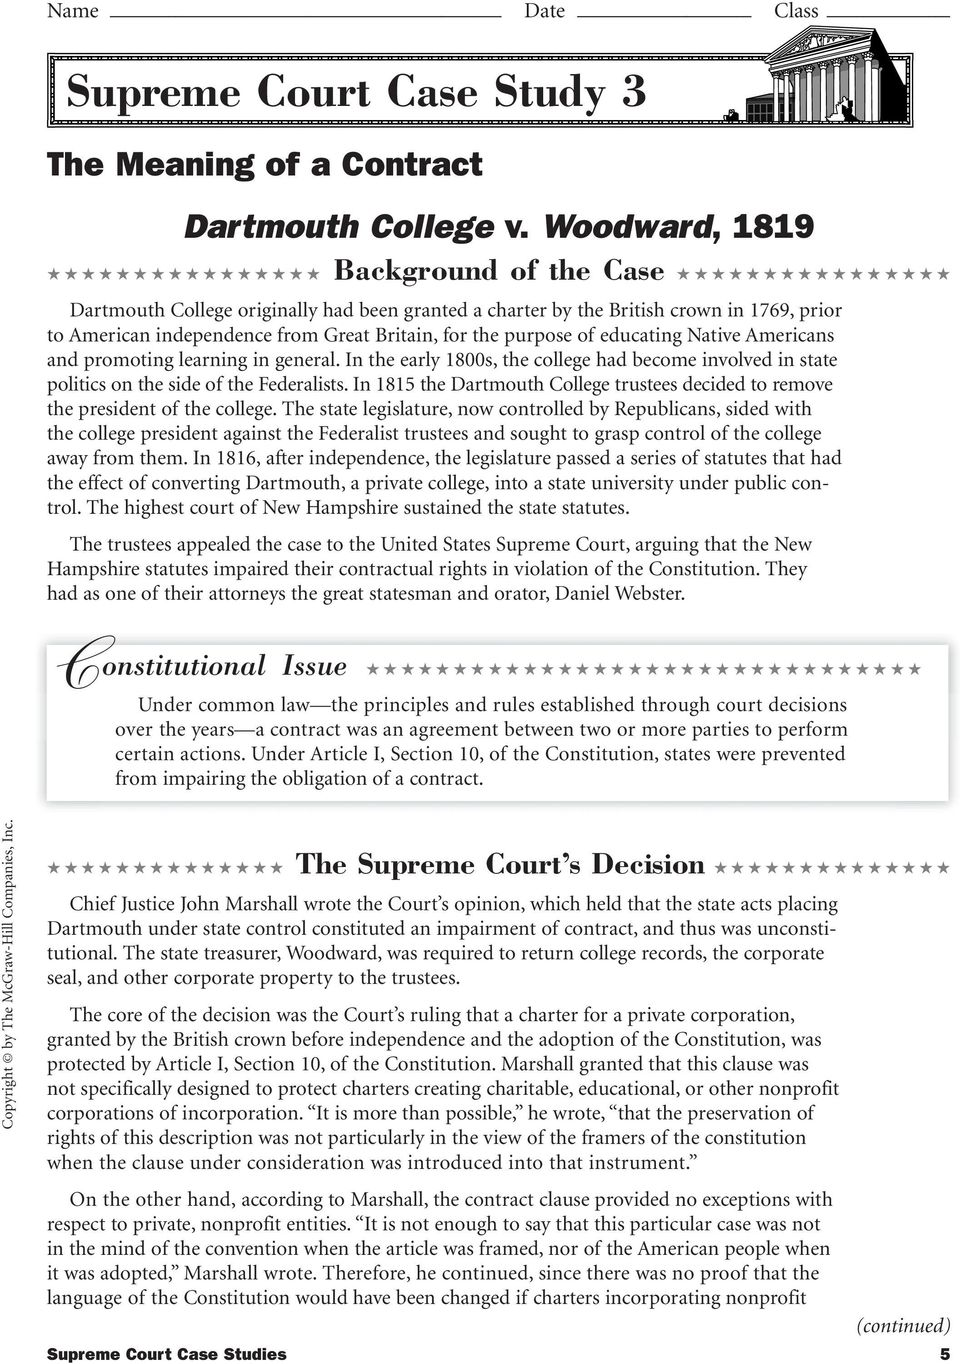 Landmark Supreme Court Cases Worksheet Worksheets